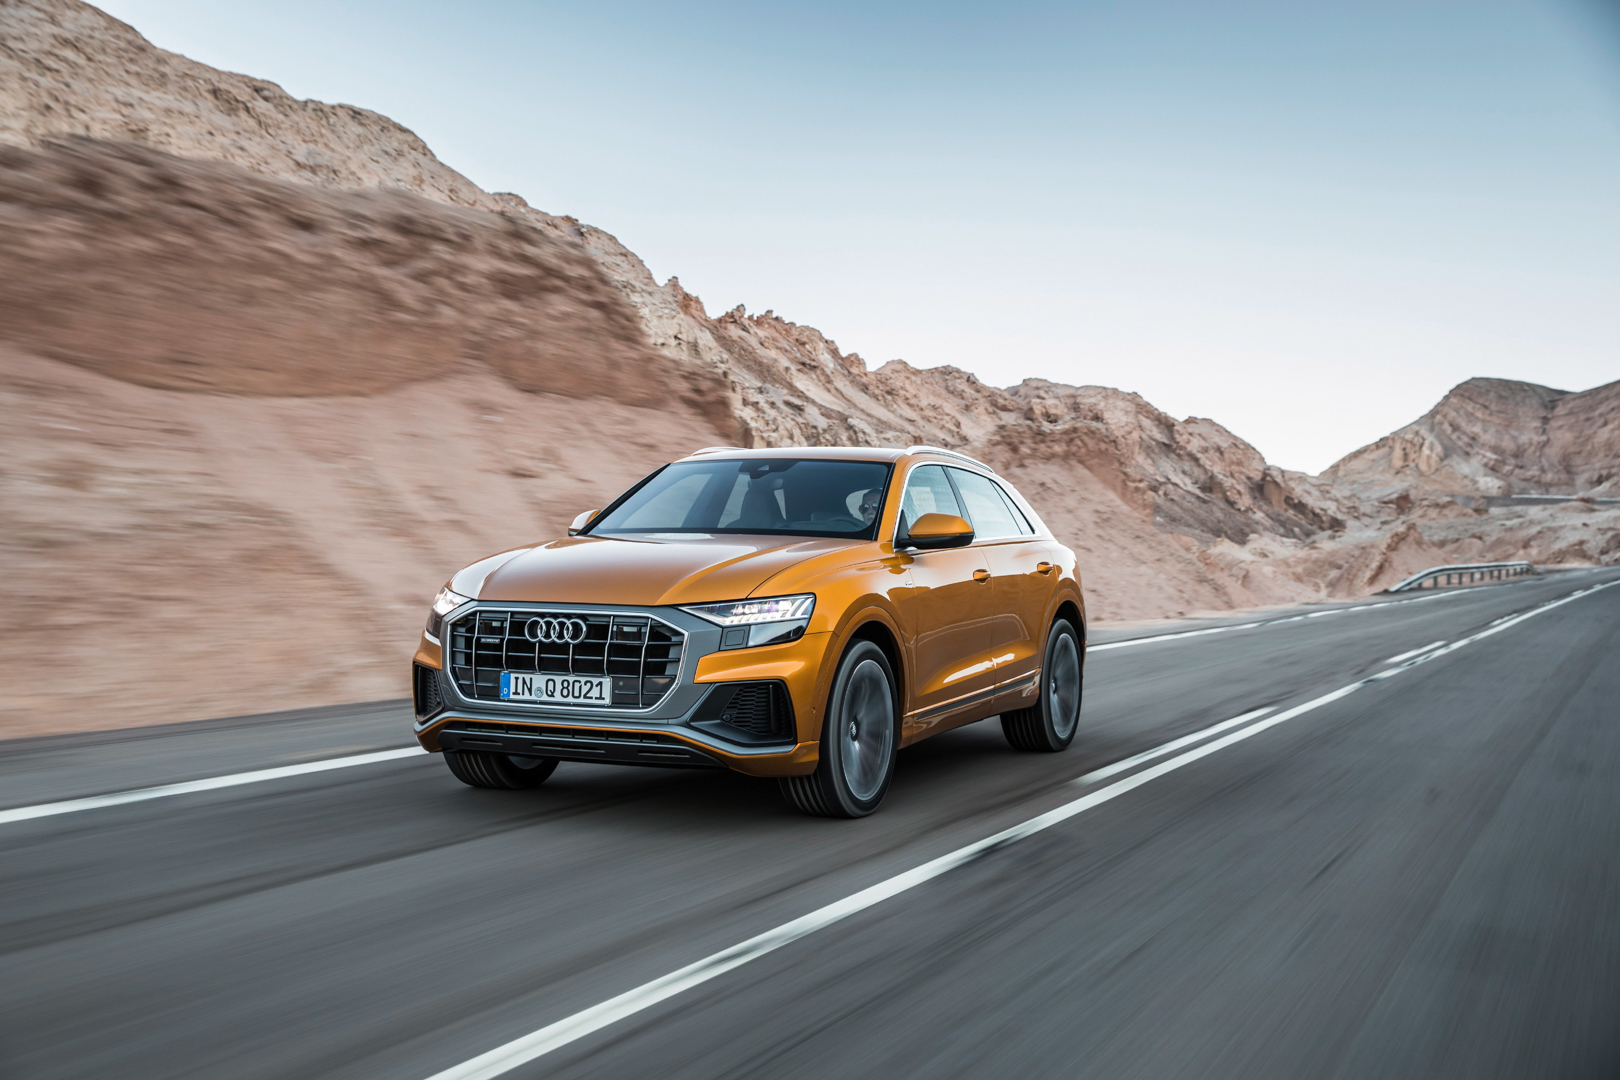 VIDEO: Audi Q8 reviewed by Carwow